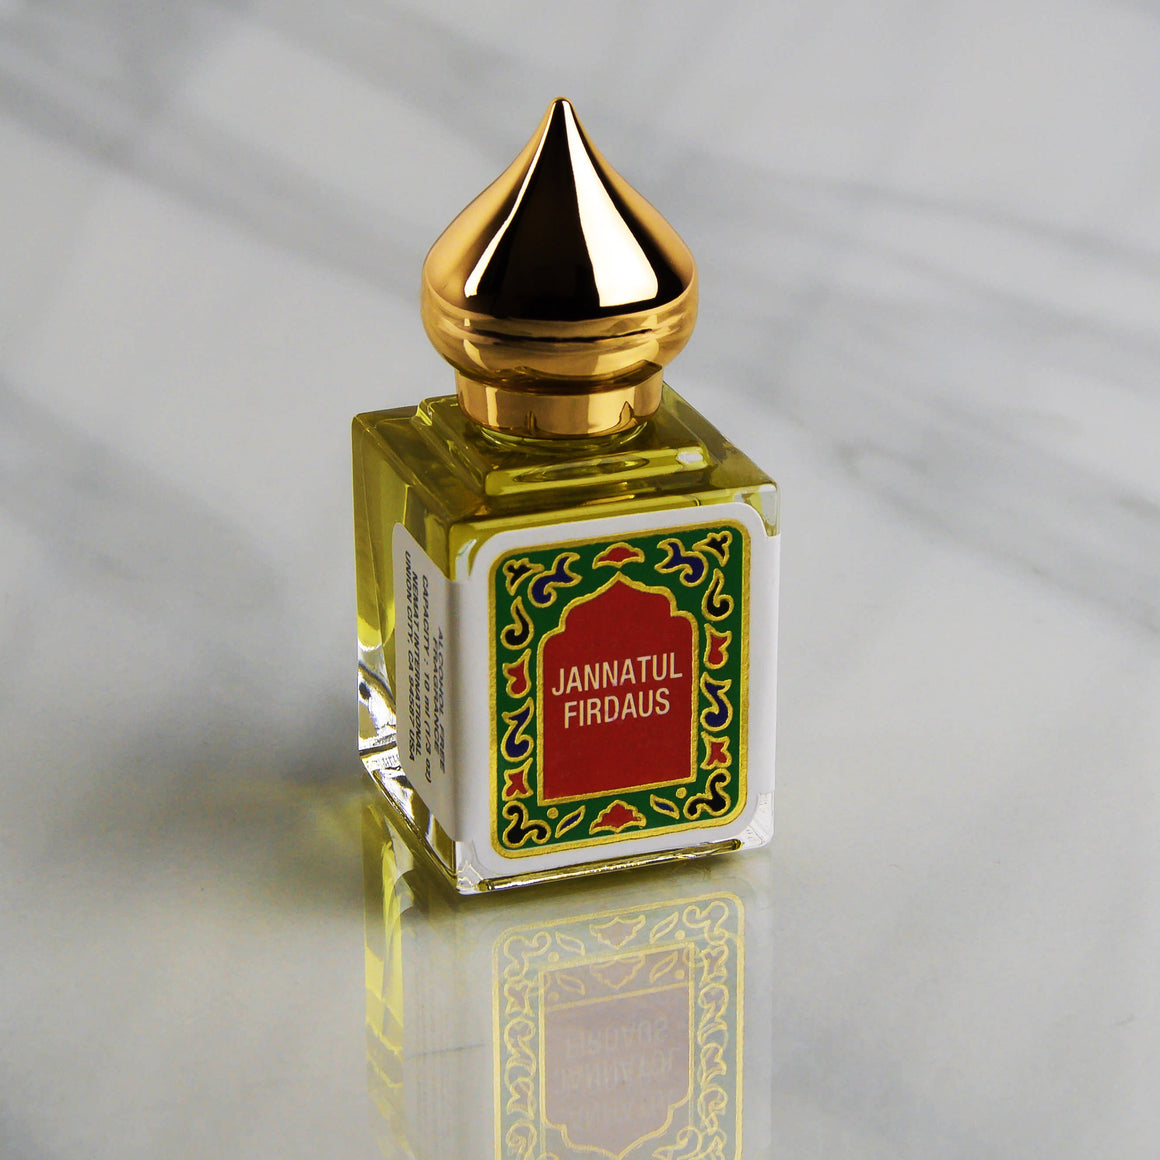 Jannatul Firdaus - exotic perfumes and fragrances by n̩mat